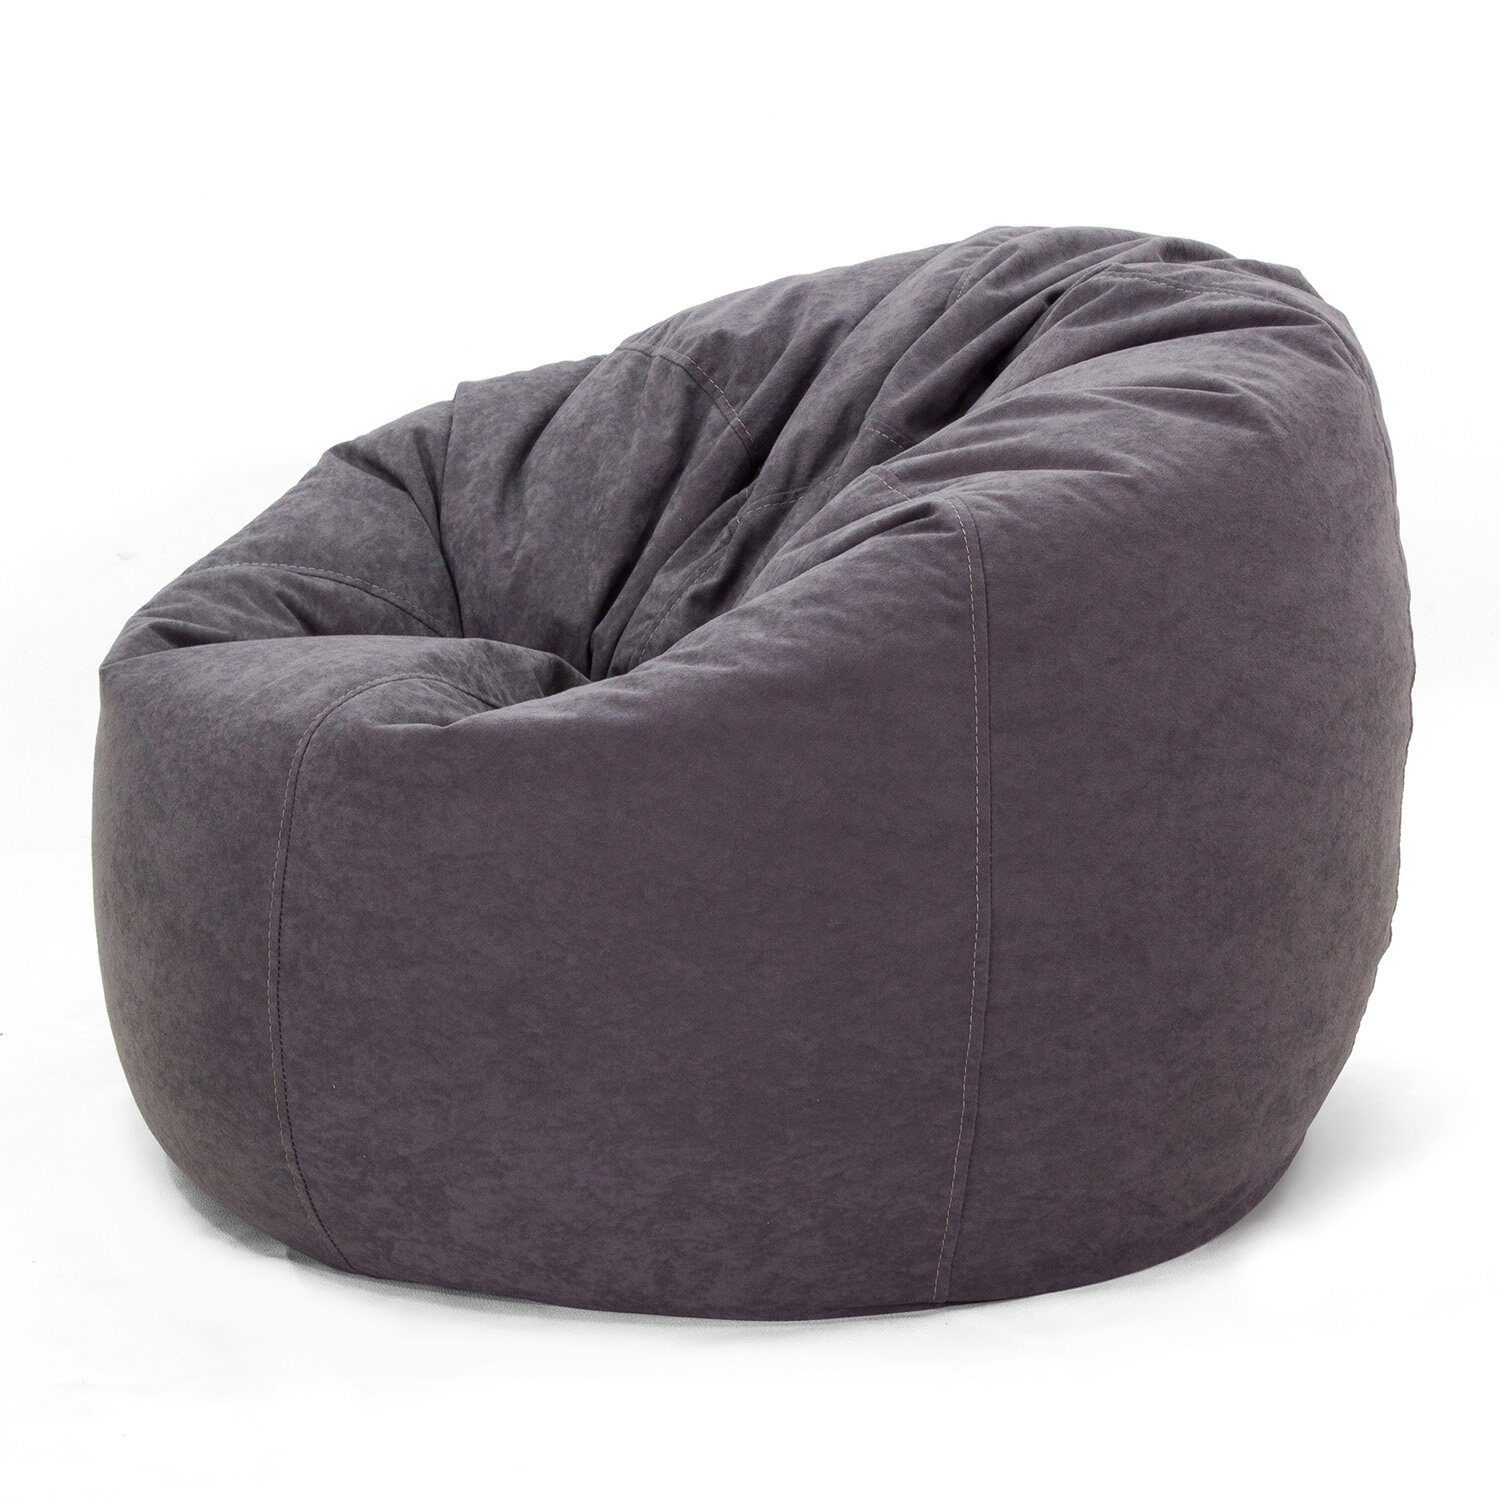 Bean bag chairs price - Pamica Bijoy Xl Size Bean Bag Grey